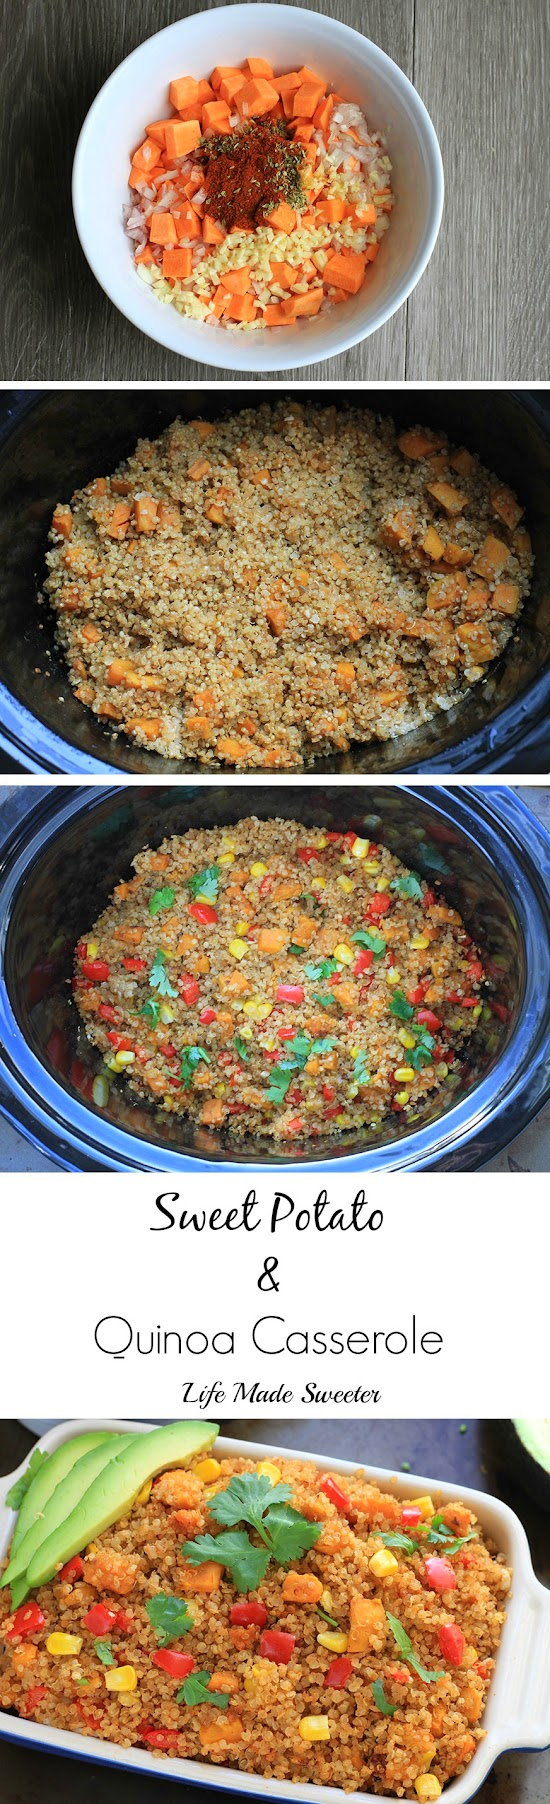 Sweet-Potato-and-Quinoa-Casserole-by -@LifeMadeSweeter.jpg